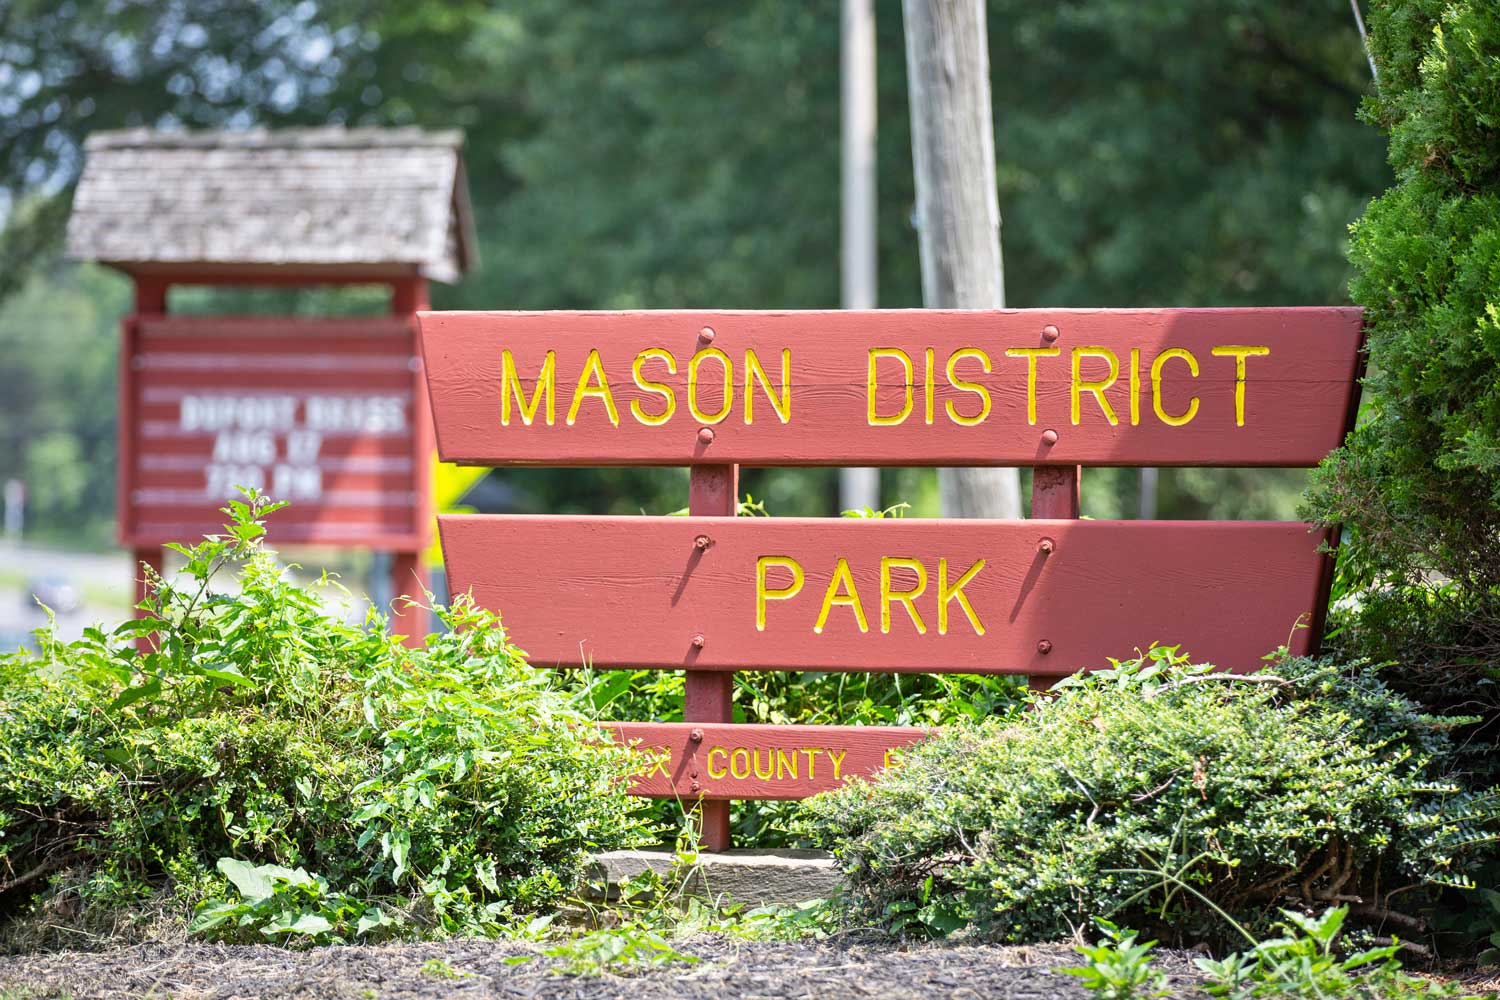 Mason District Park is 5 minutes from Barcroft Plaza Apartments in Falls Church, VA